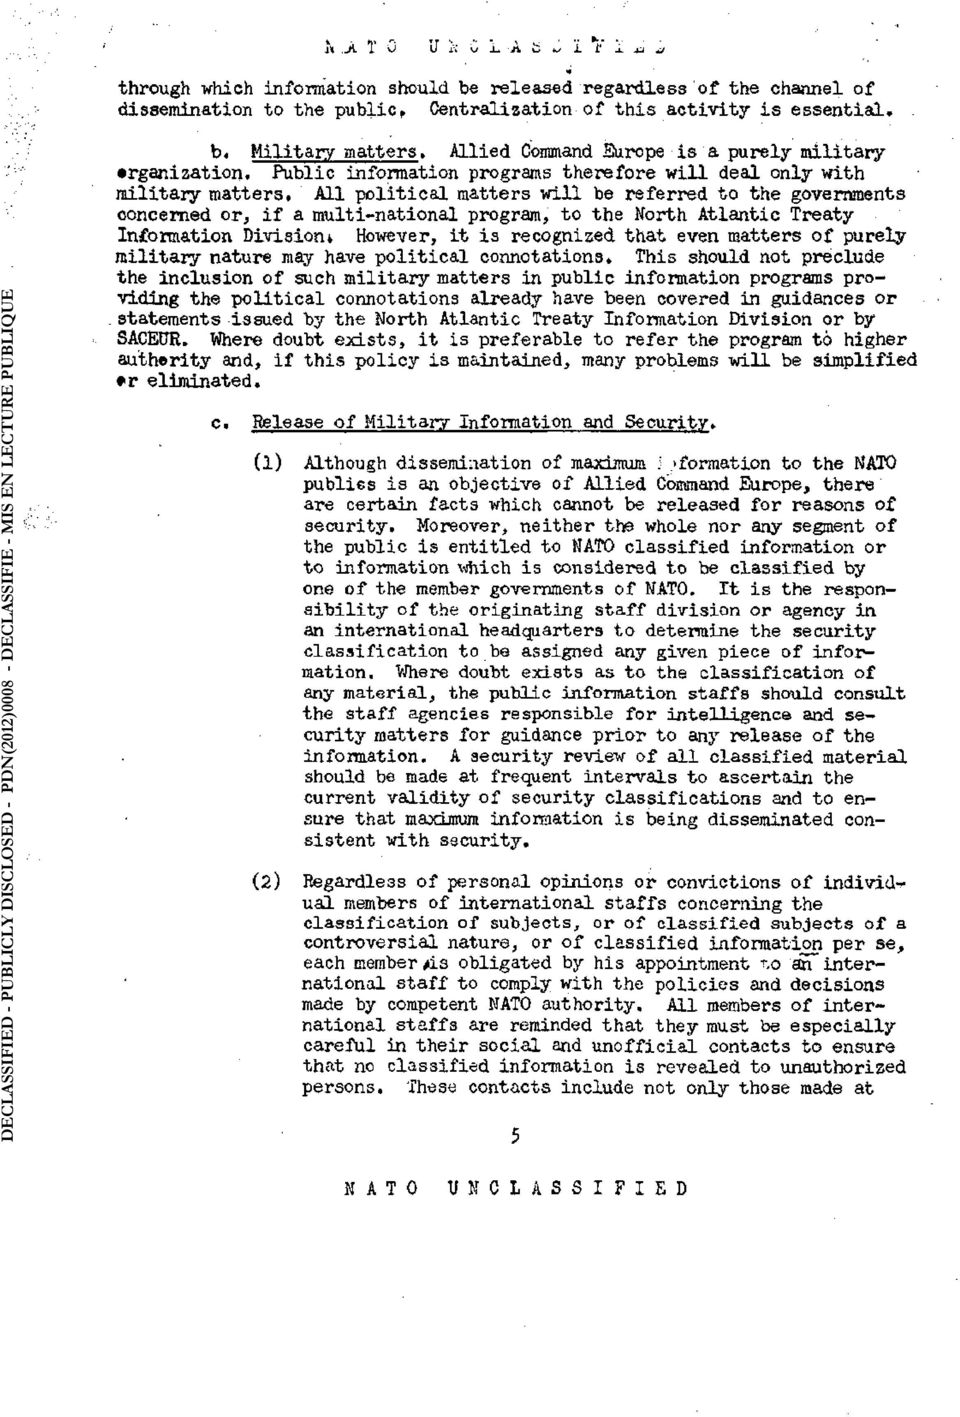 . DECLASSIFIED - PUBLICLY DISCLOSED - PDN(2012)0008 - DÉCLASSIFIÉ - MIS EN LECTURE PUBLIQUE b. Military matters. Allied Command Europe is a purely military organization.